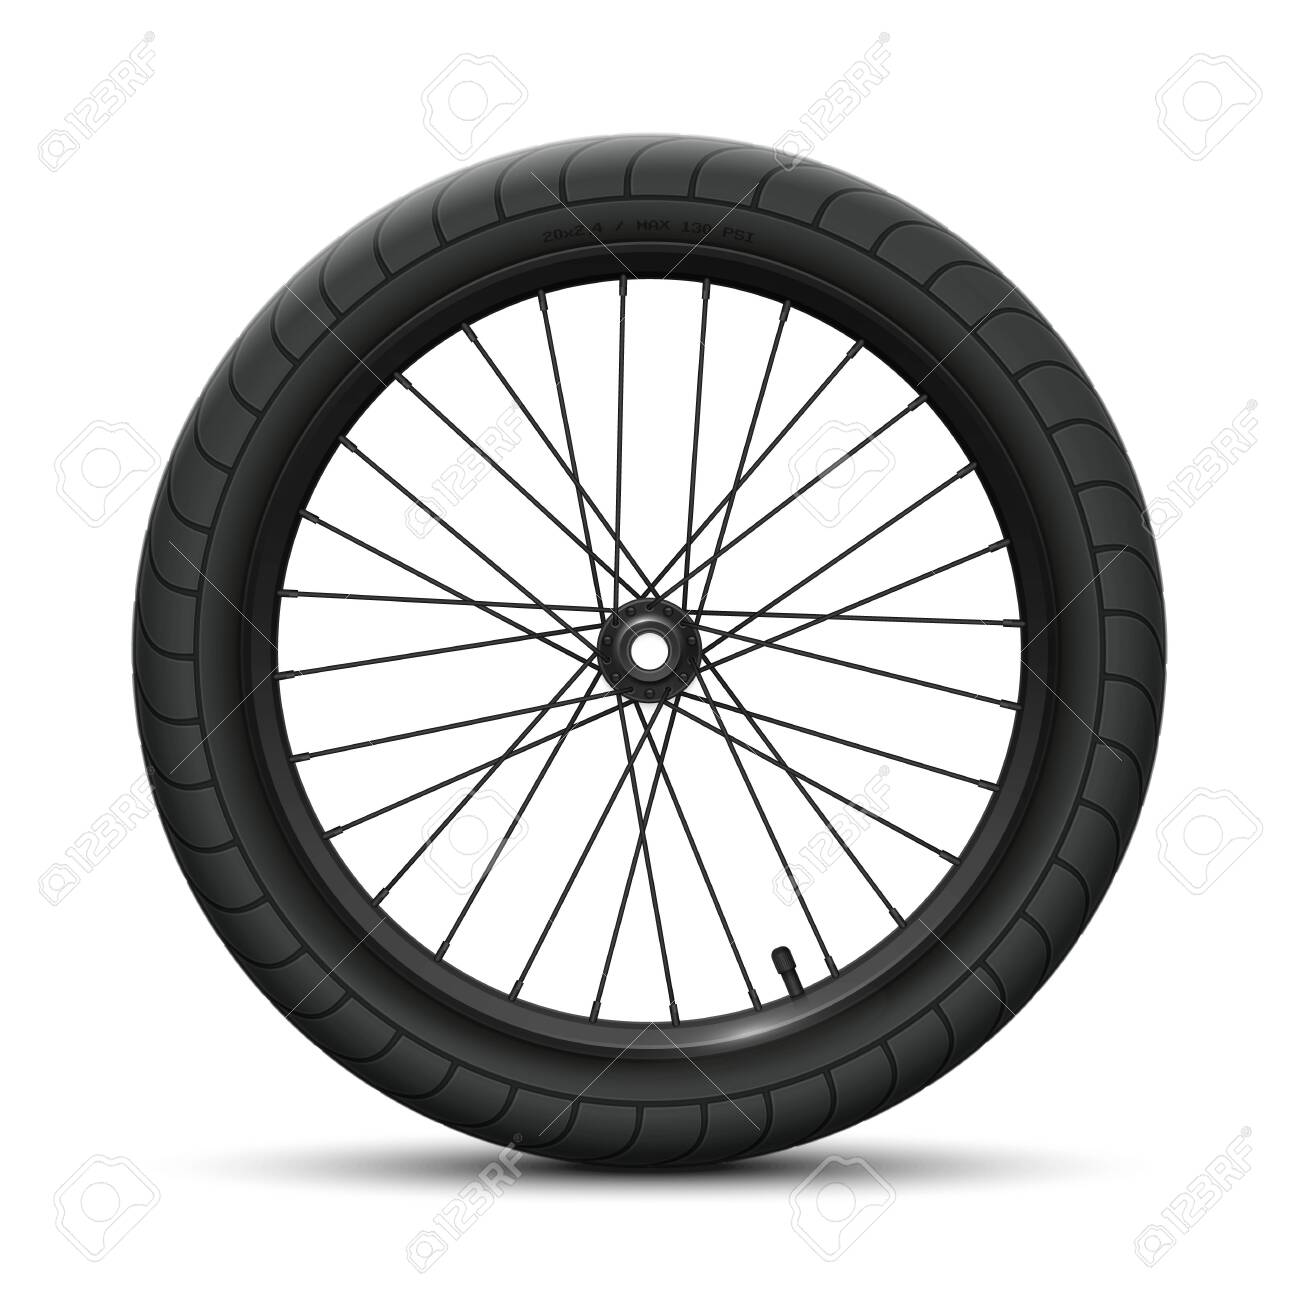 Black front wheel bicycle BMX. Sports tire with universal road tread and marking, rim, spokes, valve and hub. Vector illustration of bike parts - 153341628